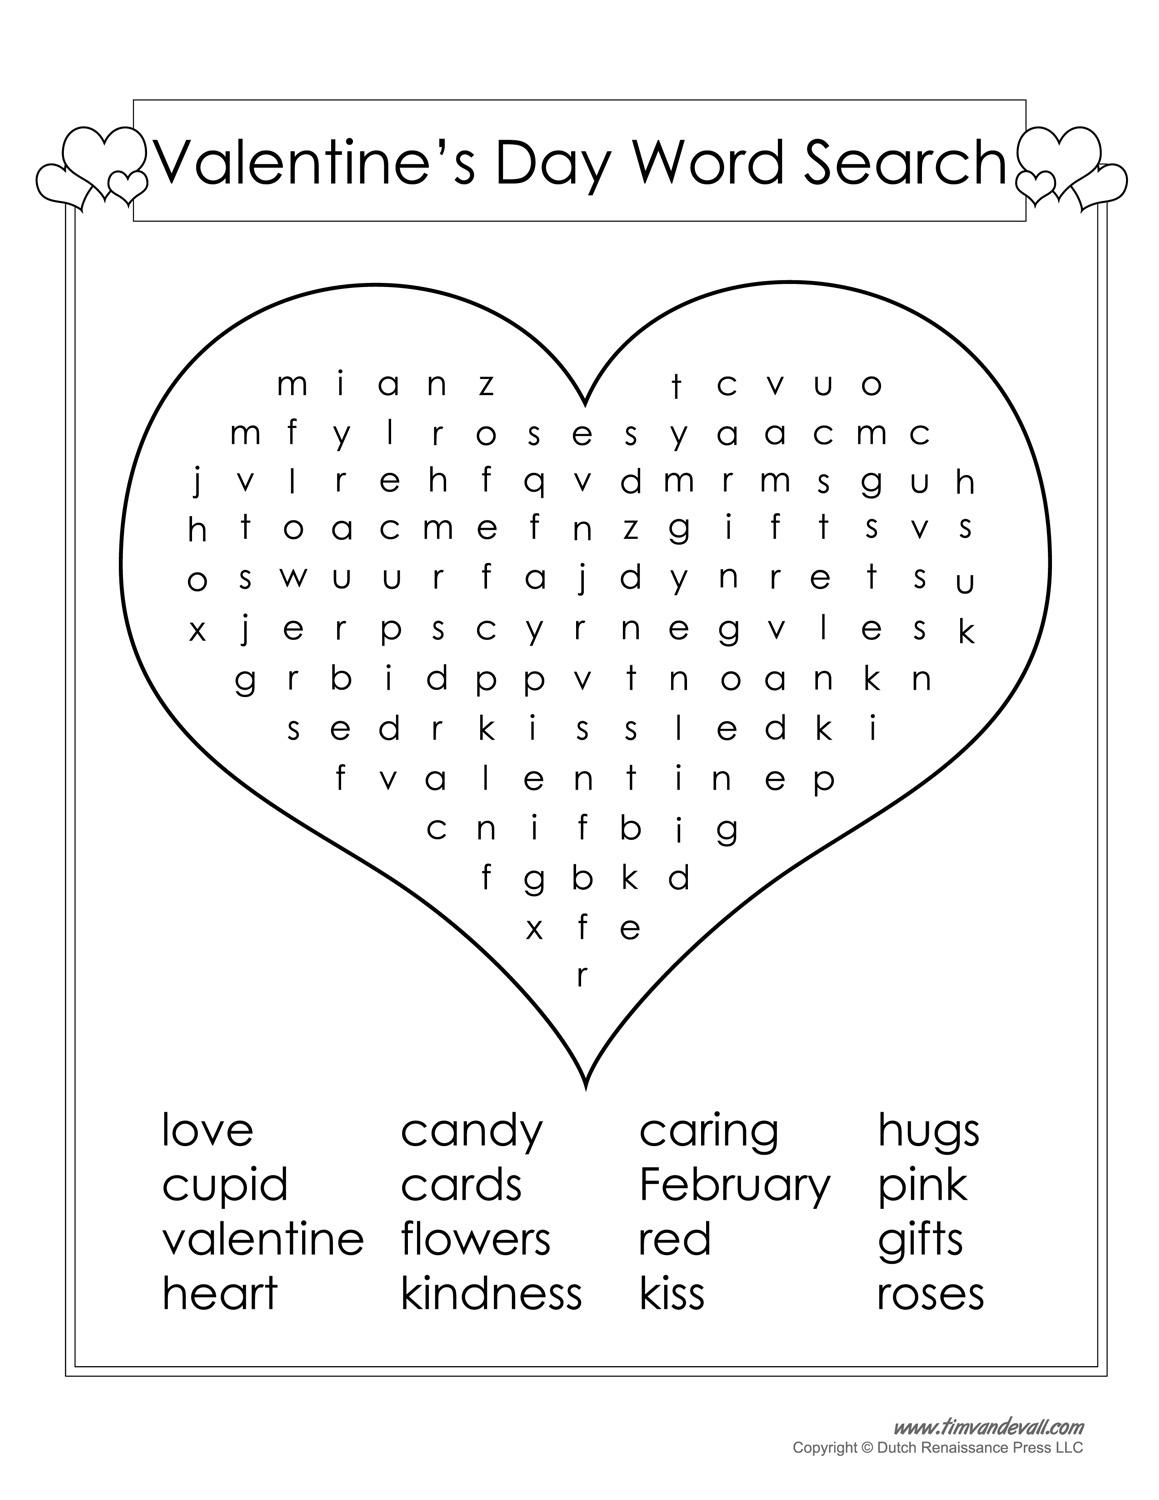 12 Valentine's Day Word Search   Kittybabylove - Printable Puzzle Of The Day